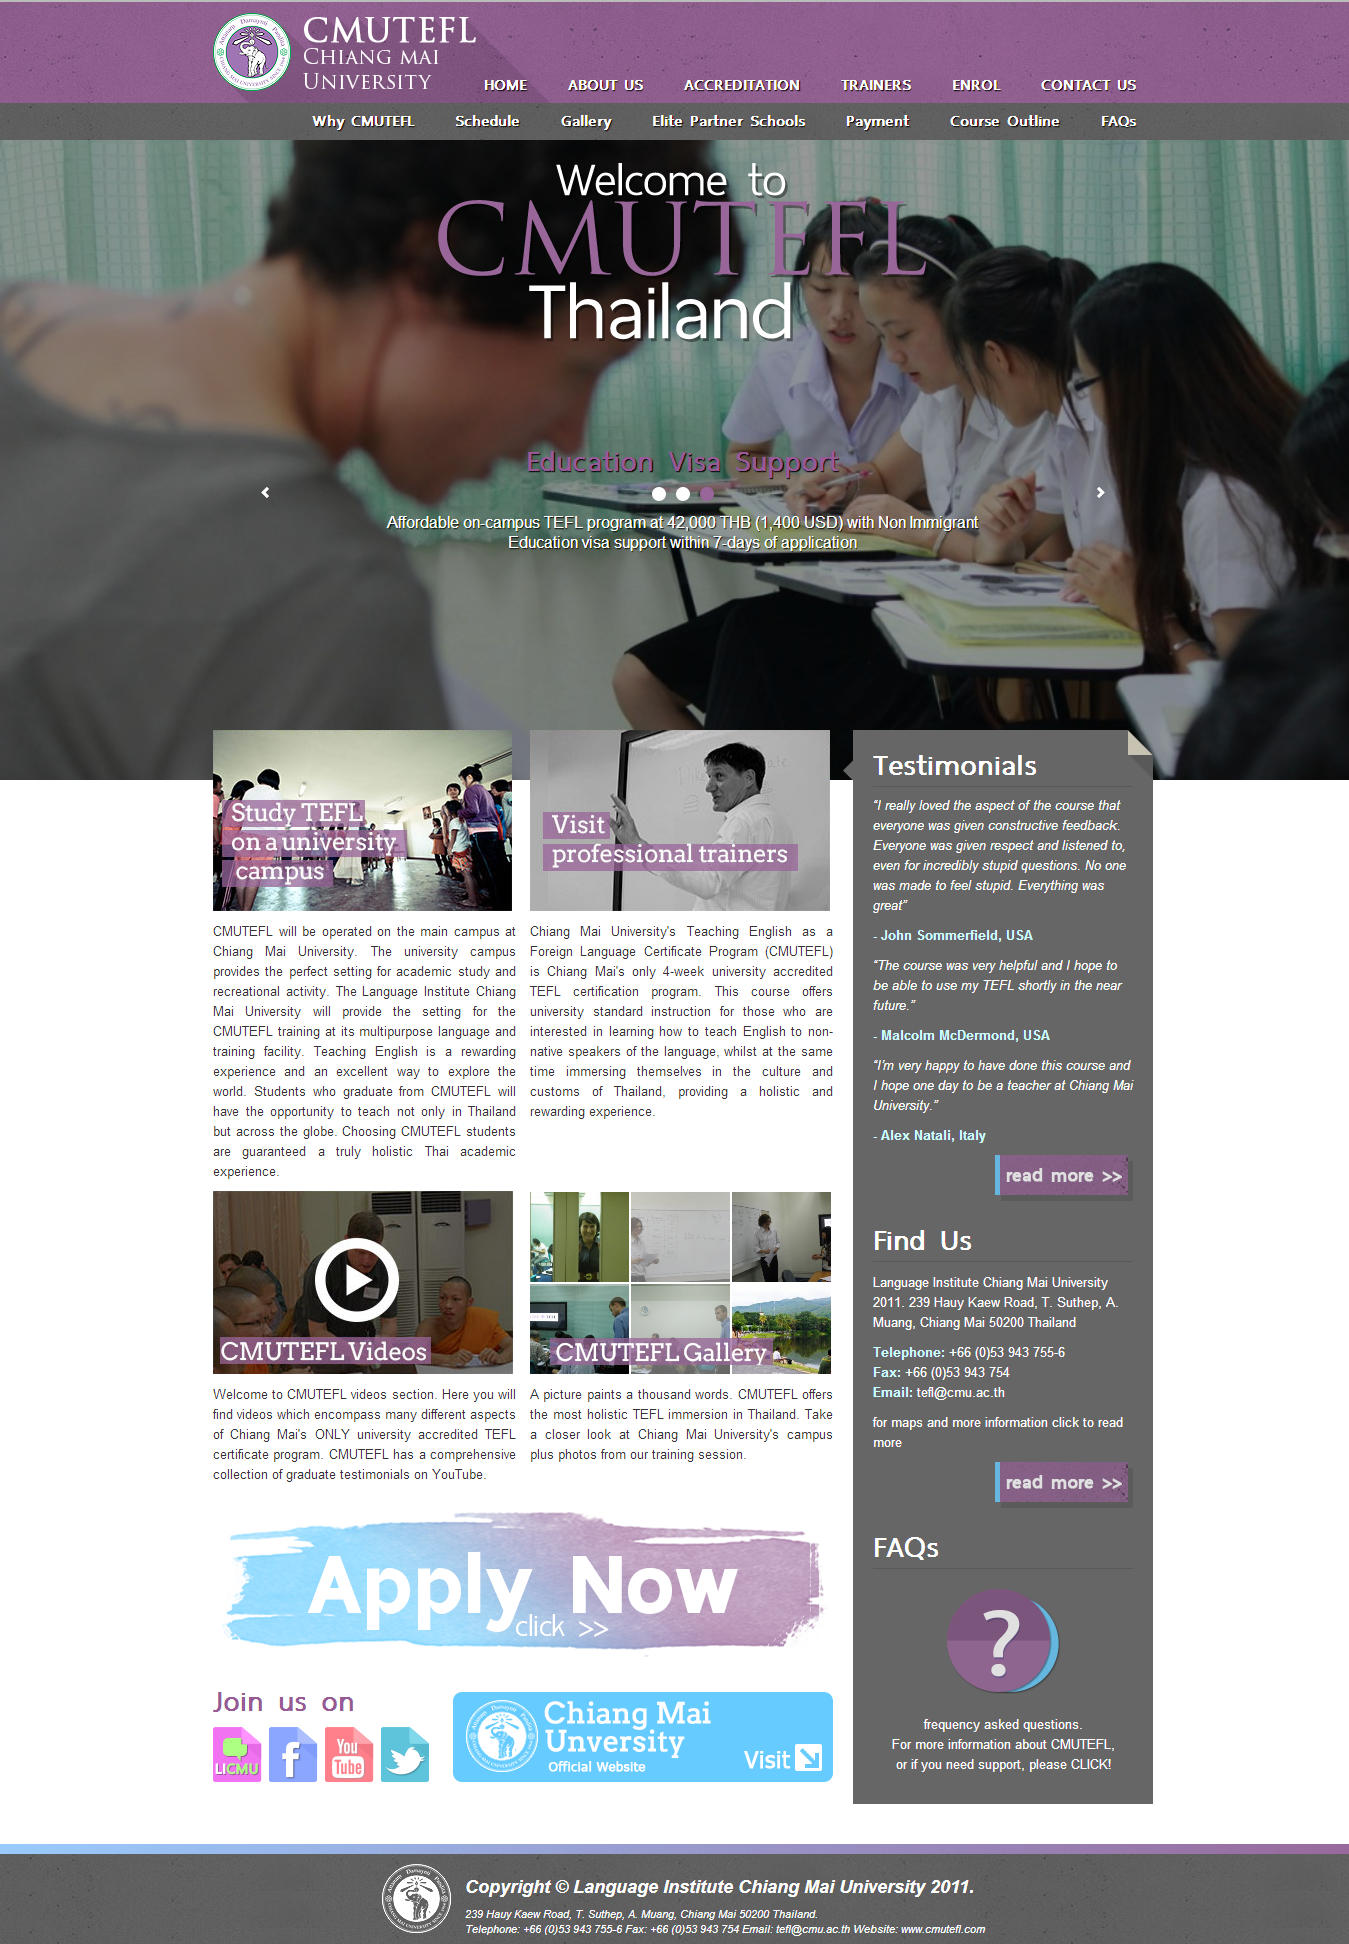 CMUTEFL_Chiang Mai University TEFL Thailand   TEFL Certification Courses Chiang Mai University TEFL Thailand   TEFL Certification Courses